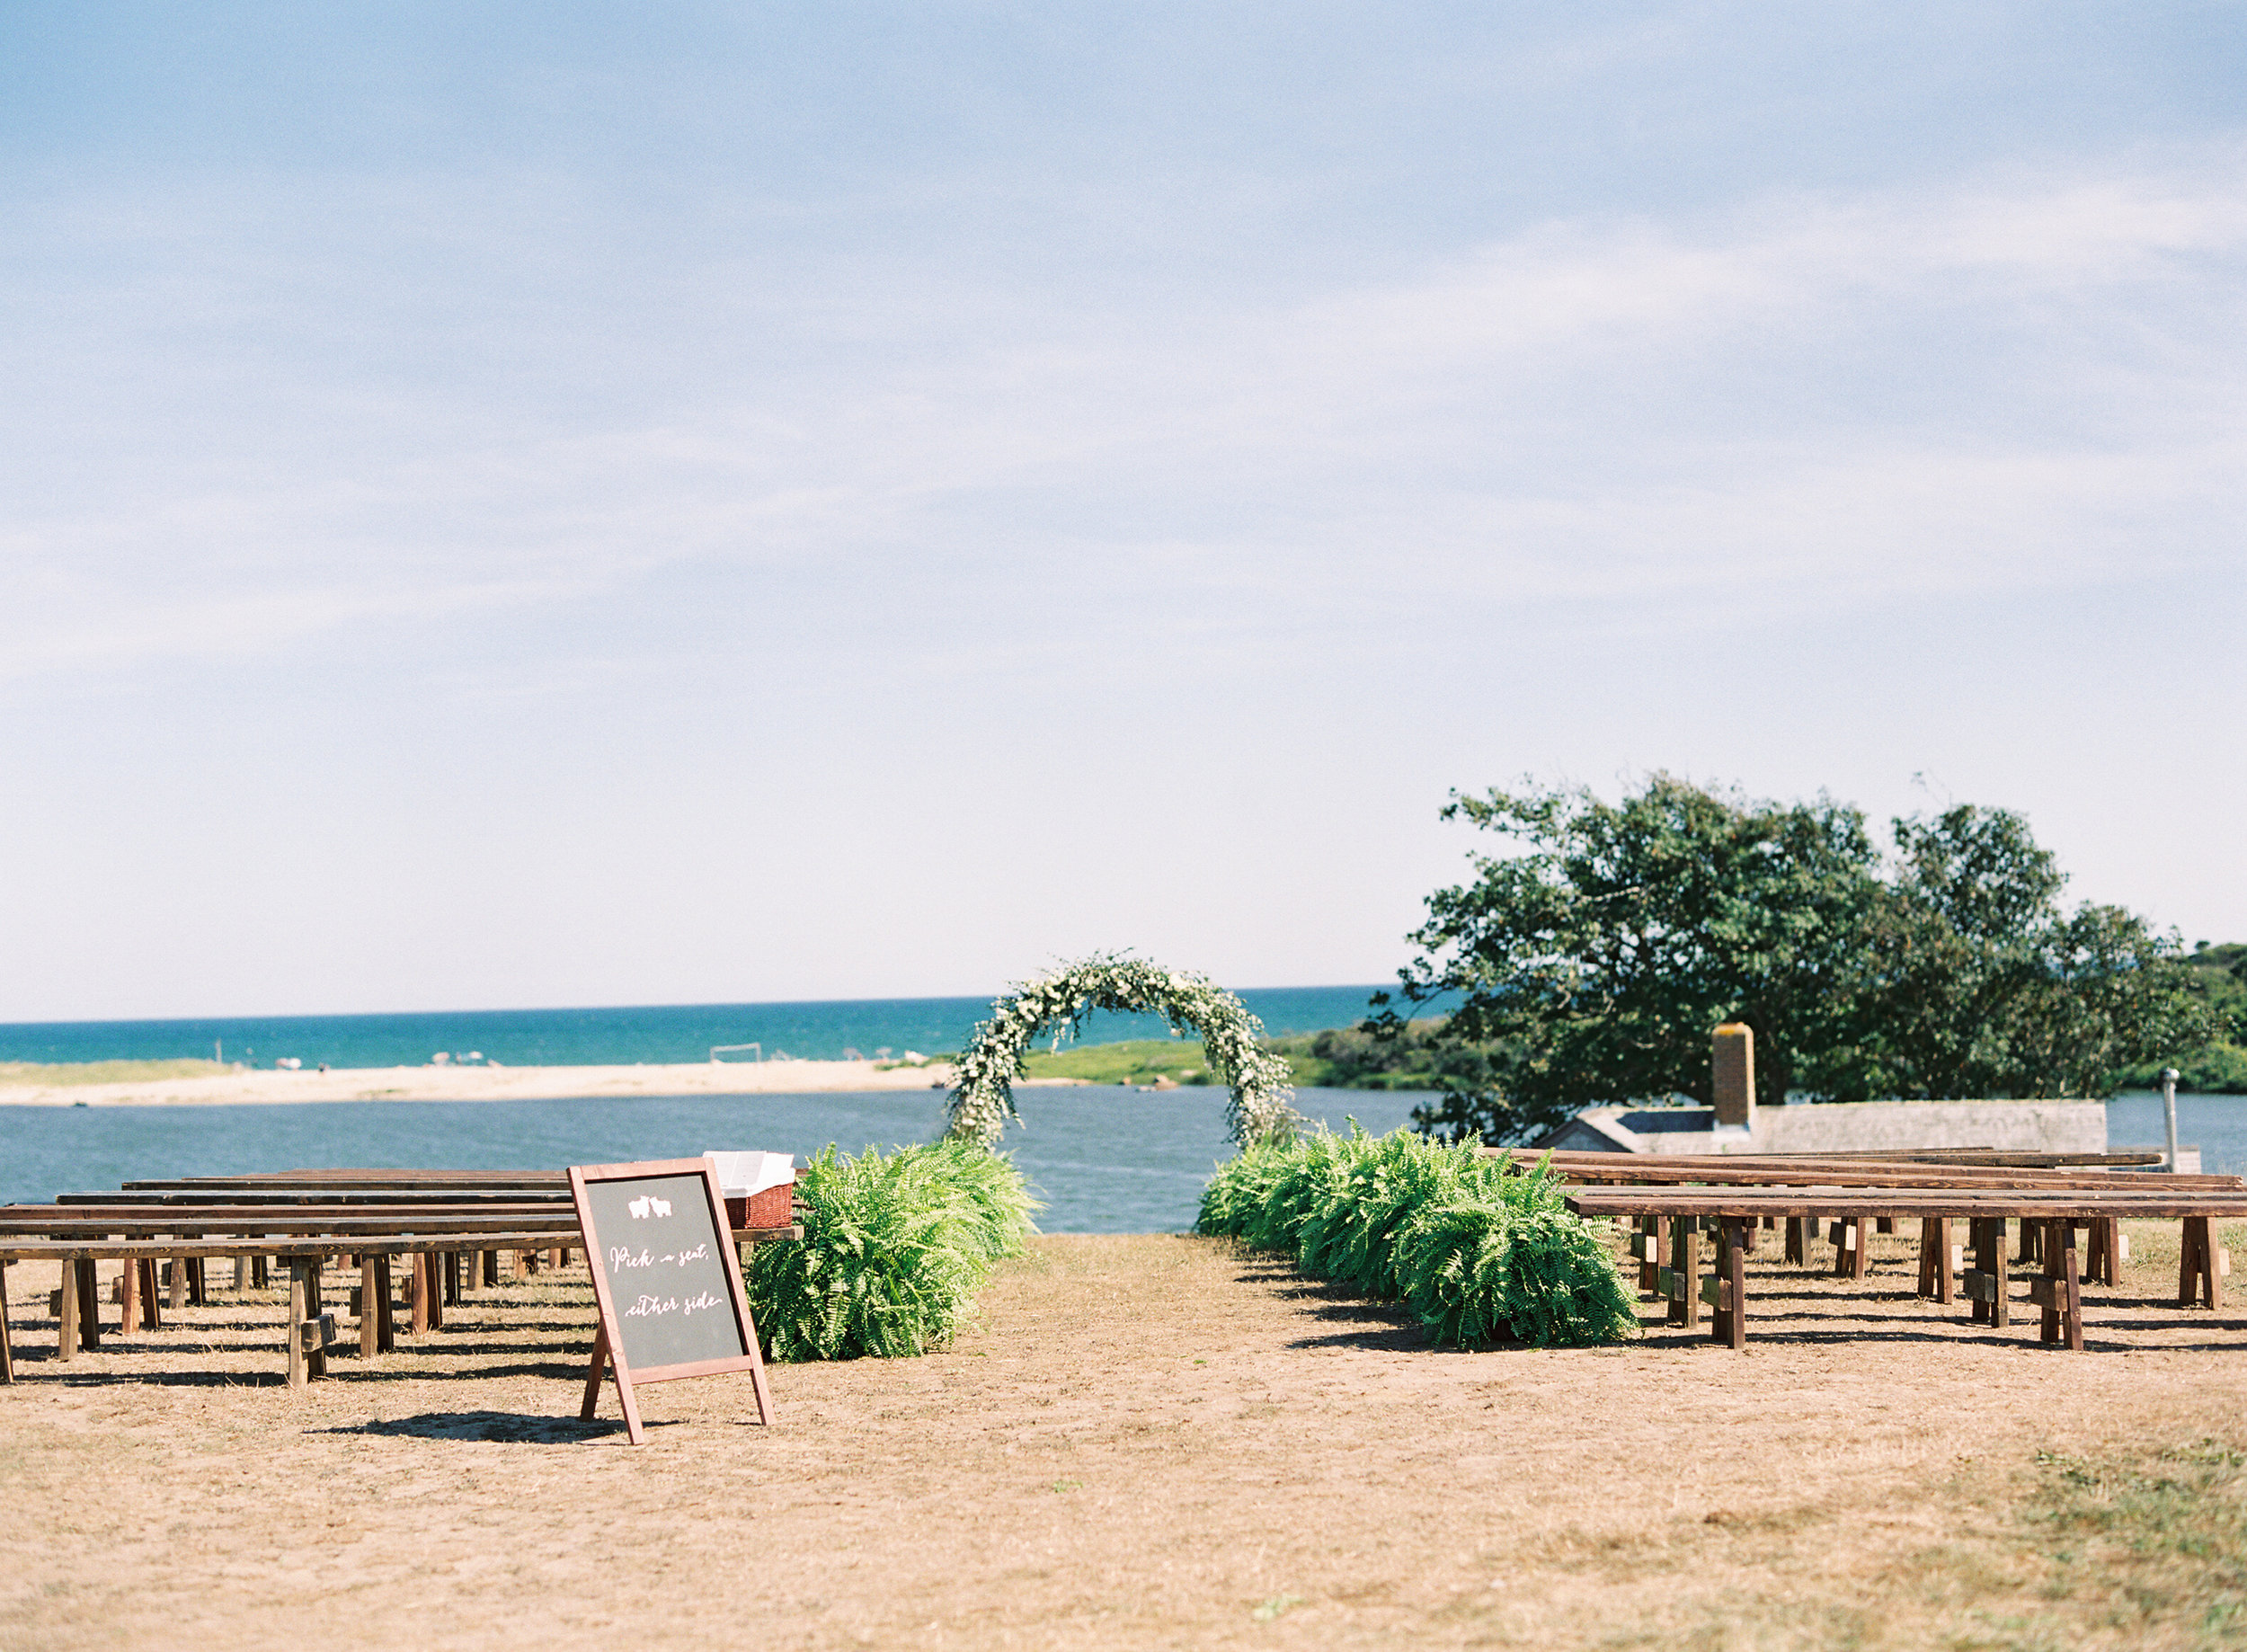 Marthas-Vineyard-Wedding-on-Martha-Stewart-430.jpg